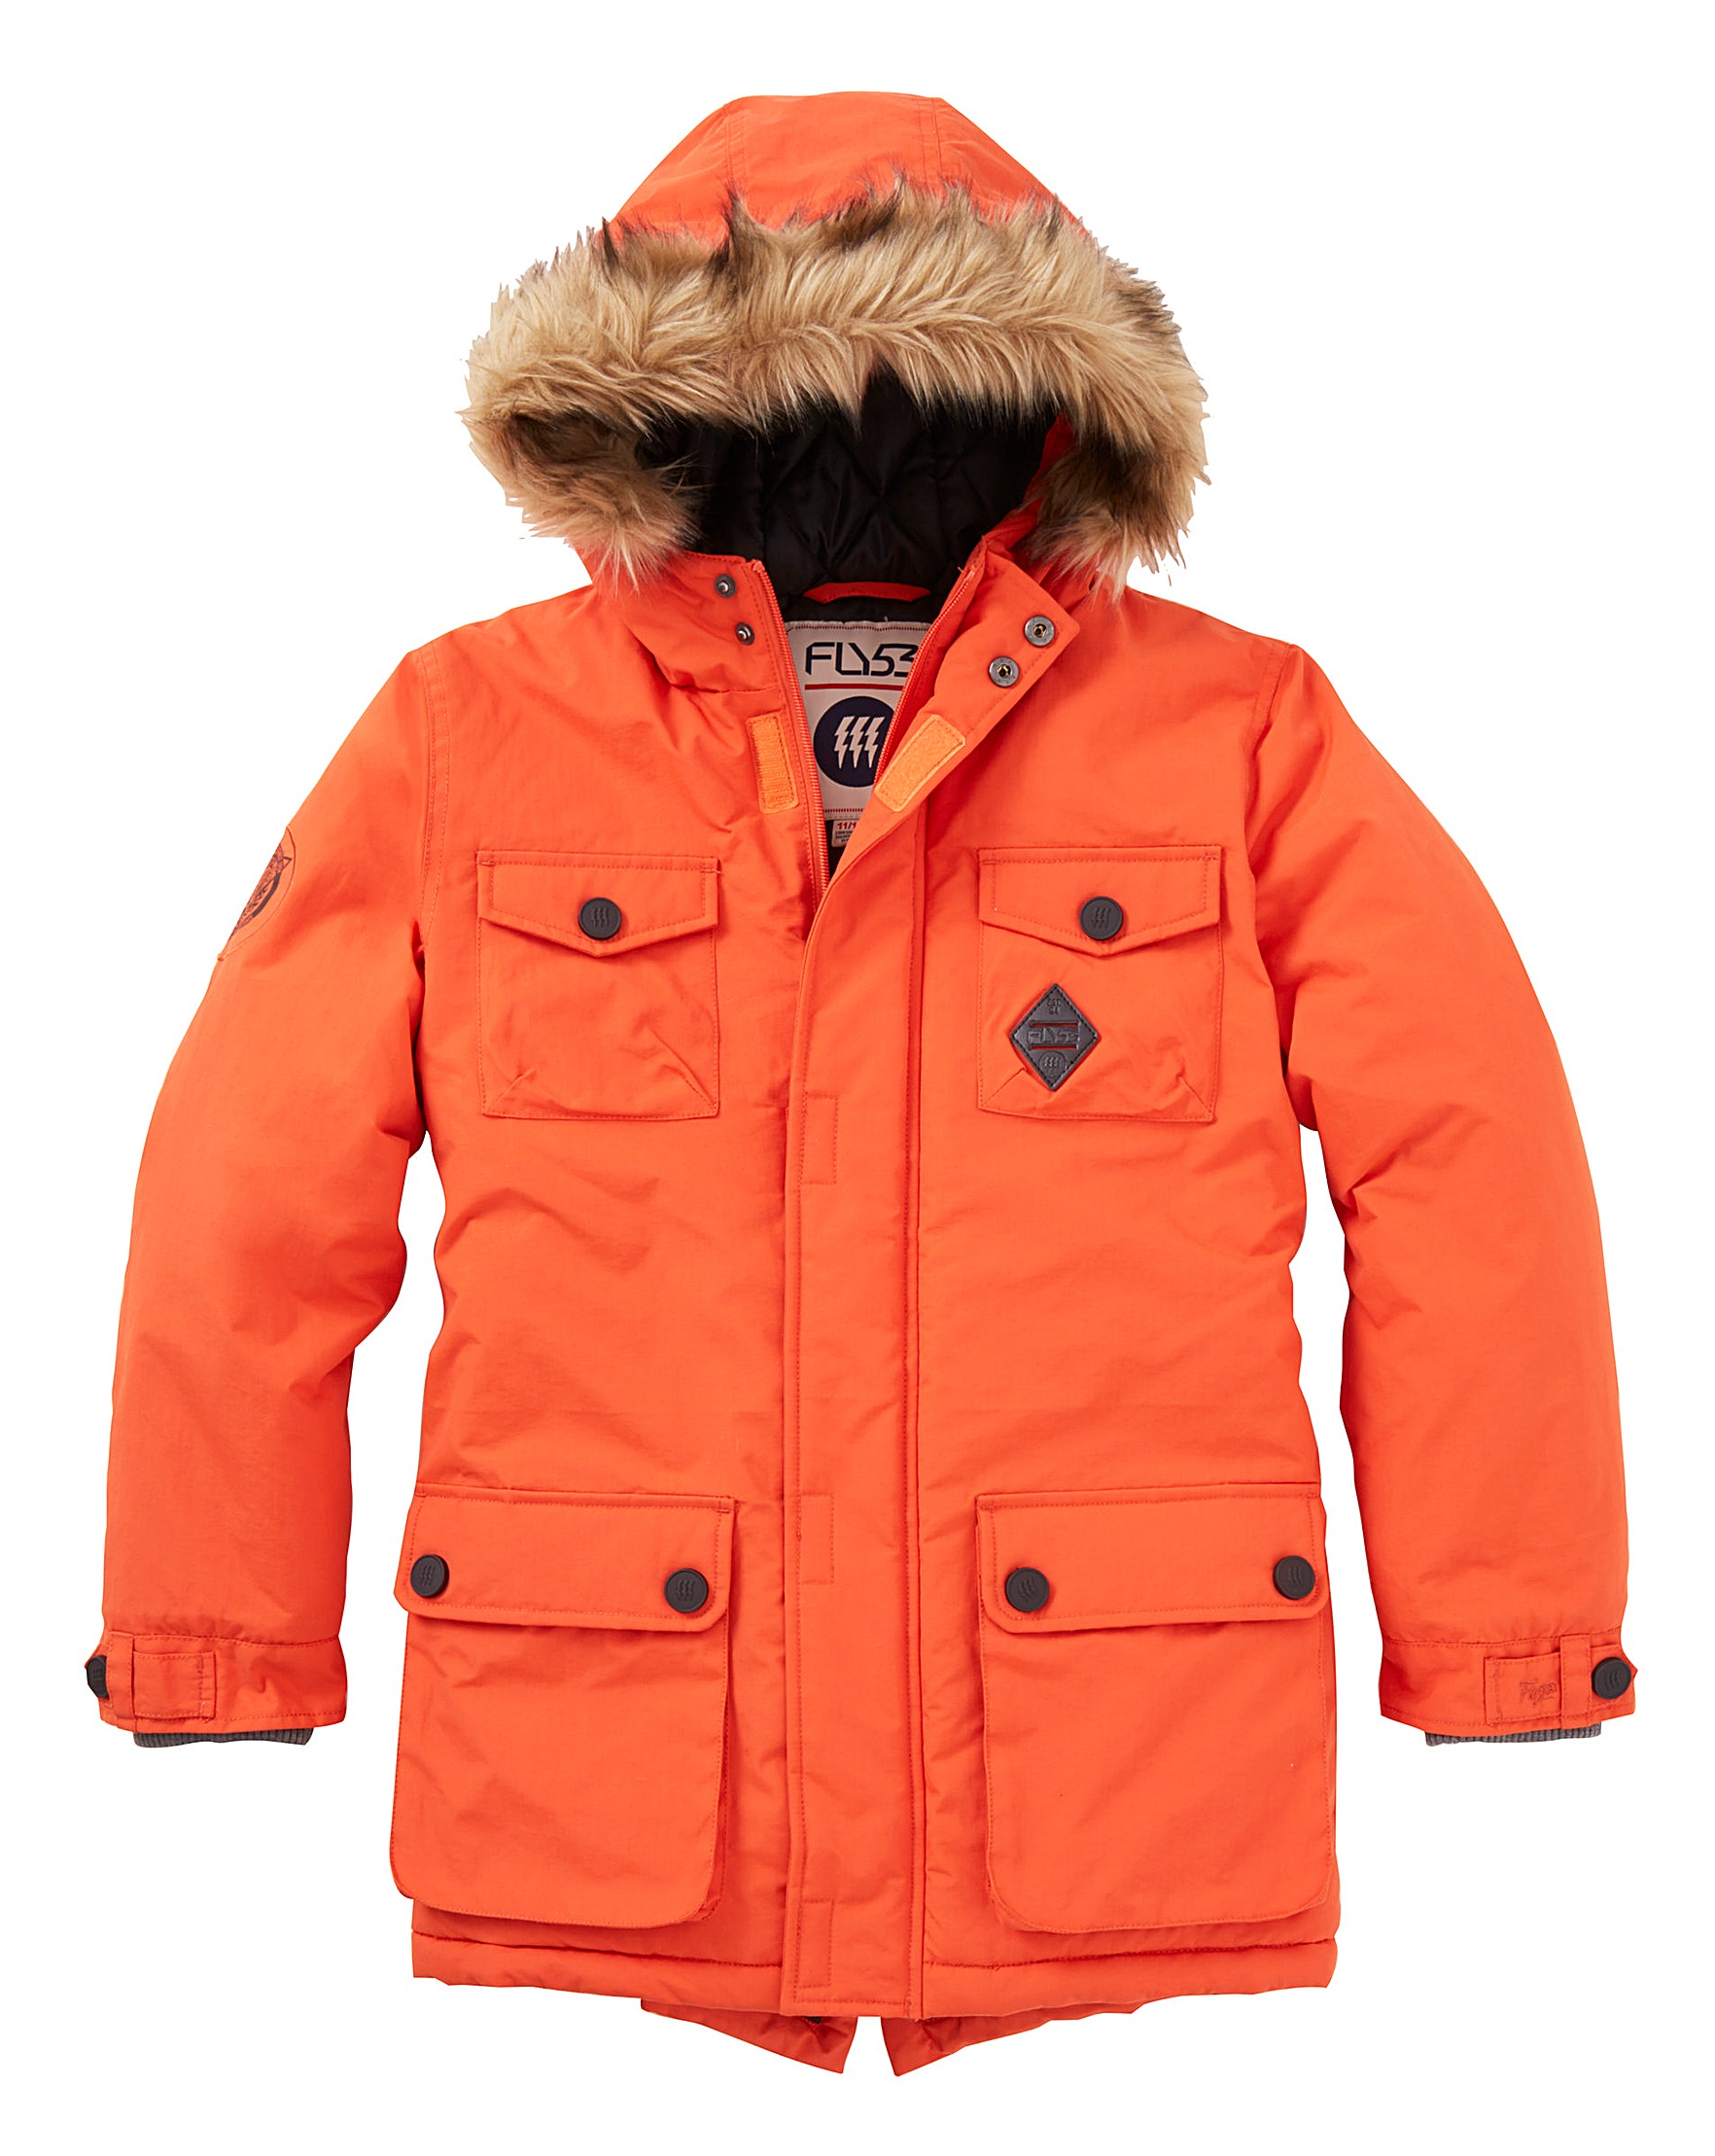 Fly 53 Boys Parka Coat (7-13 yrs) | J D Williams